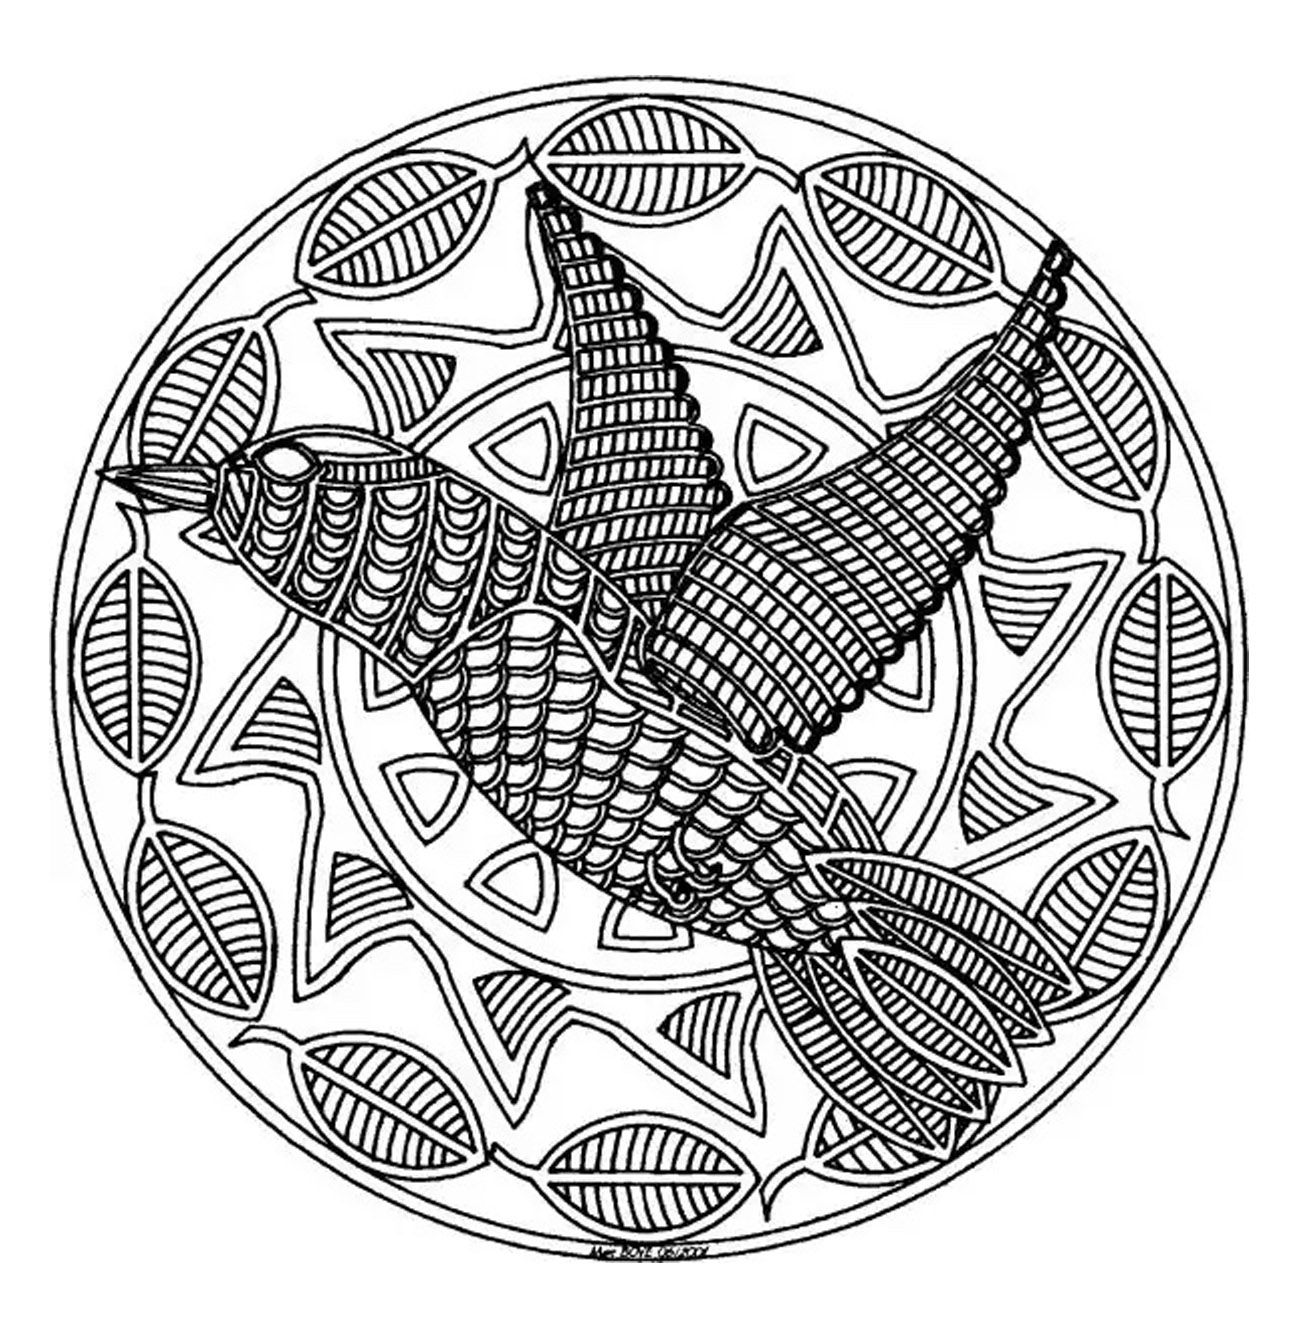 hard mandala coloring pages difficult stress relief mandala coloring pages pages for mandala coloring pages hard